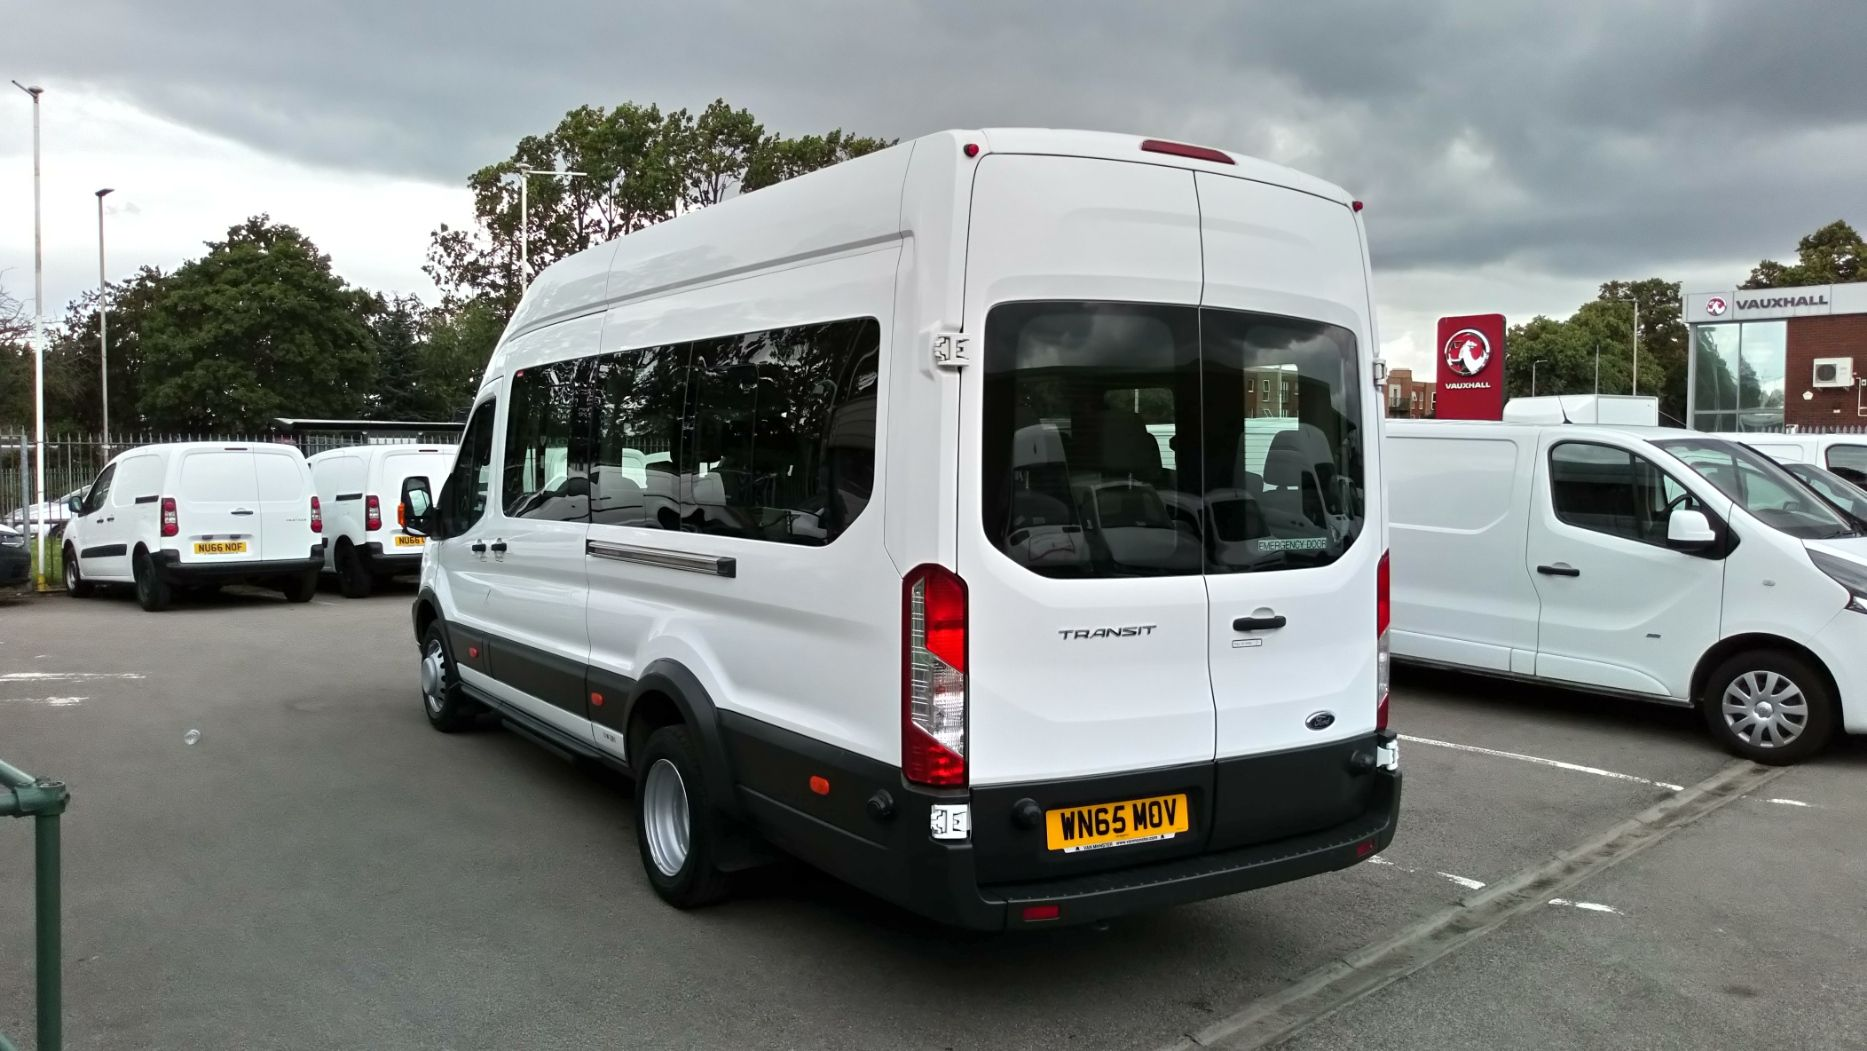 2015 Ford Transit 2.2 Tdci 125Ps H3 17 Seater (WN65MOV) Image 5